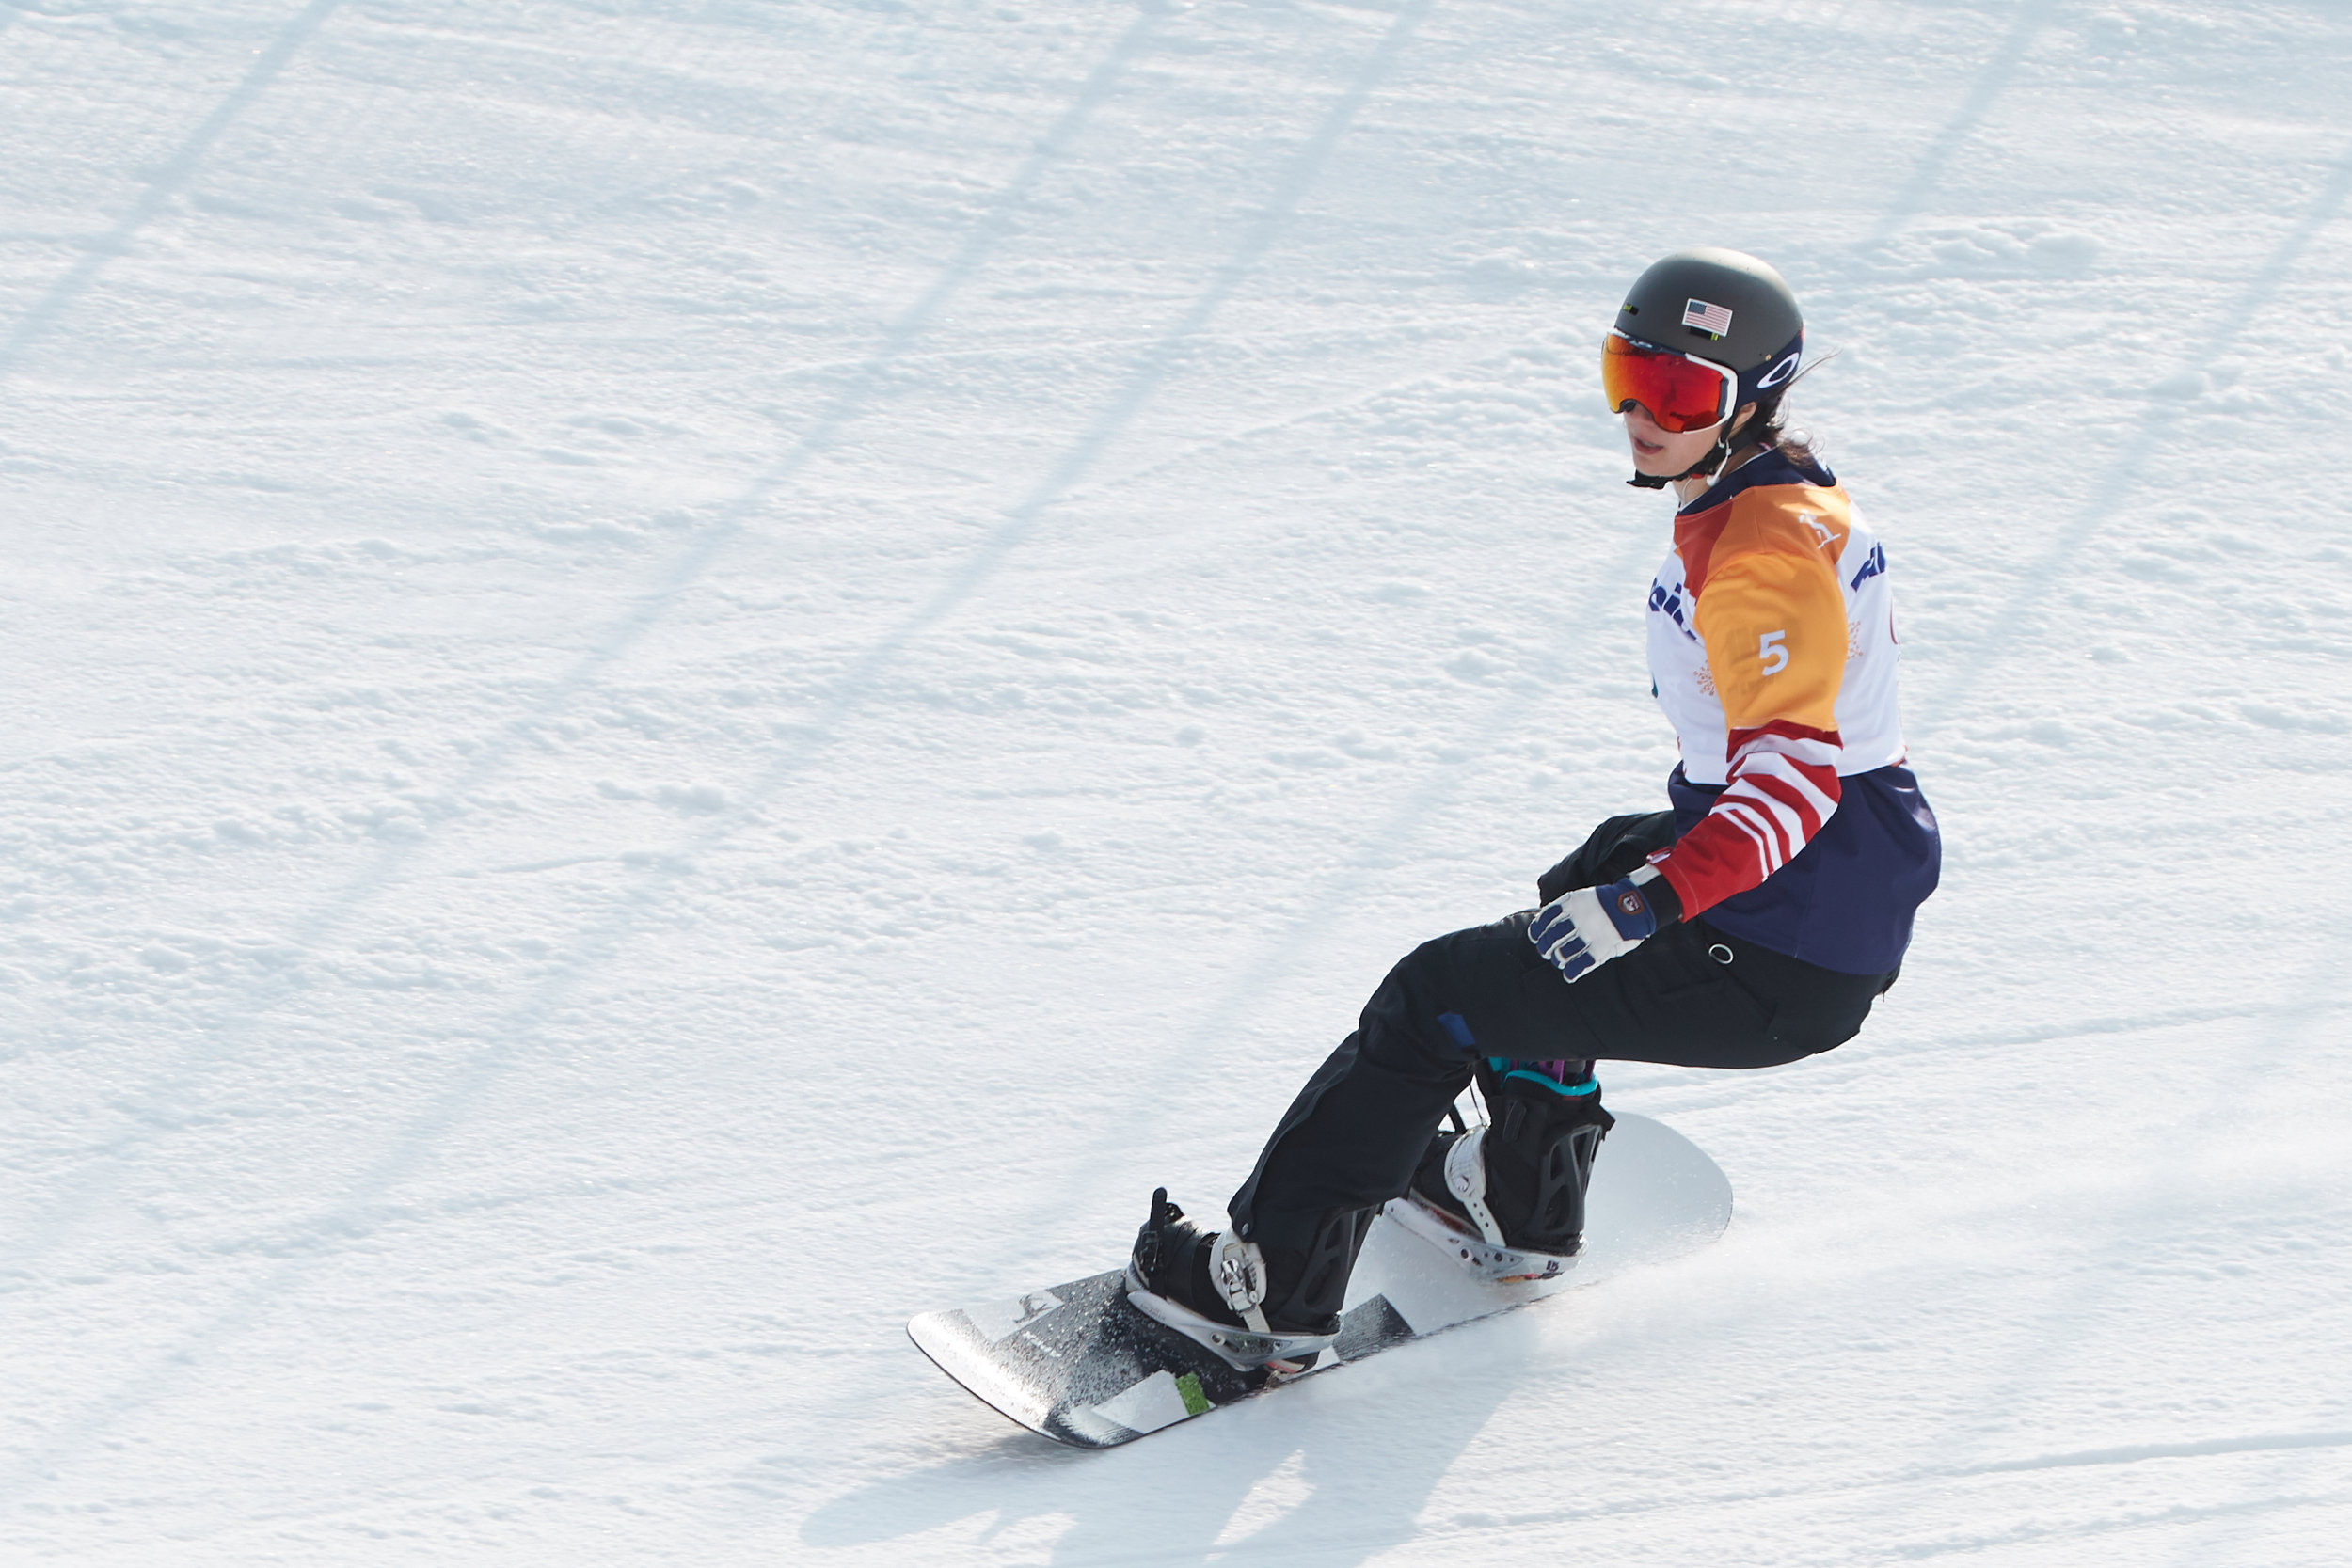 Brenna Huckaby on the slopes of PyeongChang. Image Courtesy Wheelchair Sports Federation